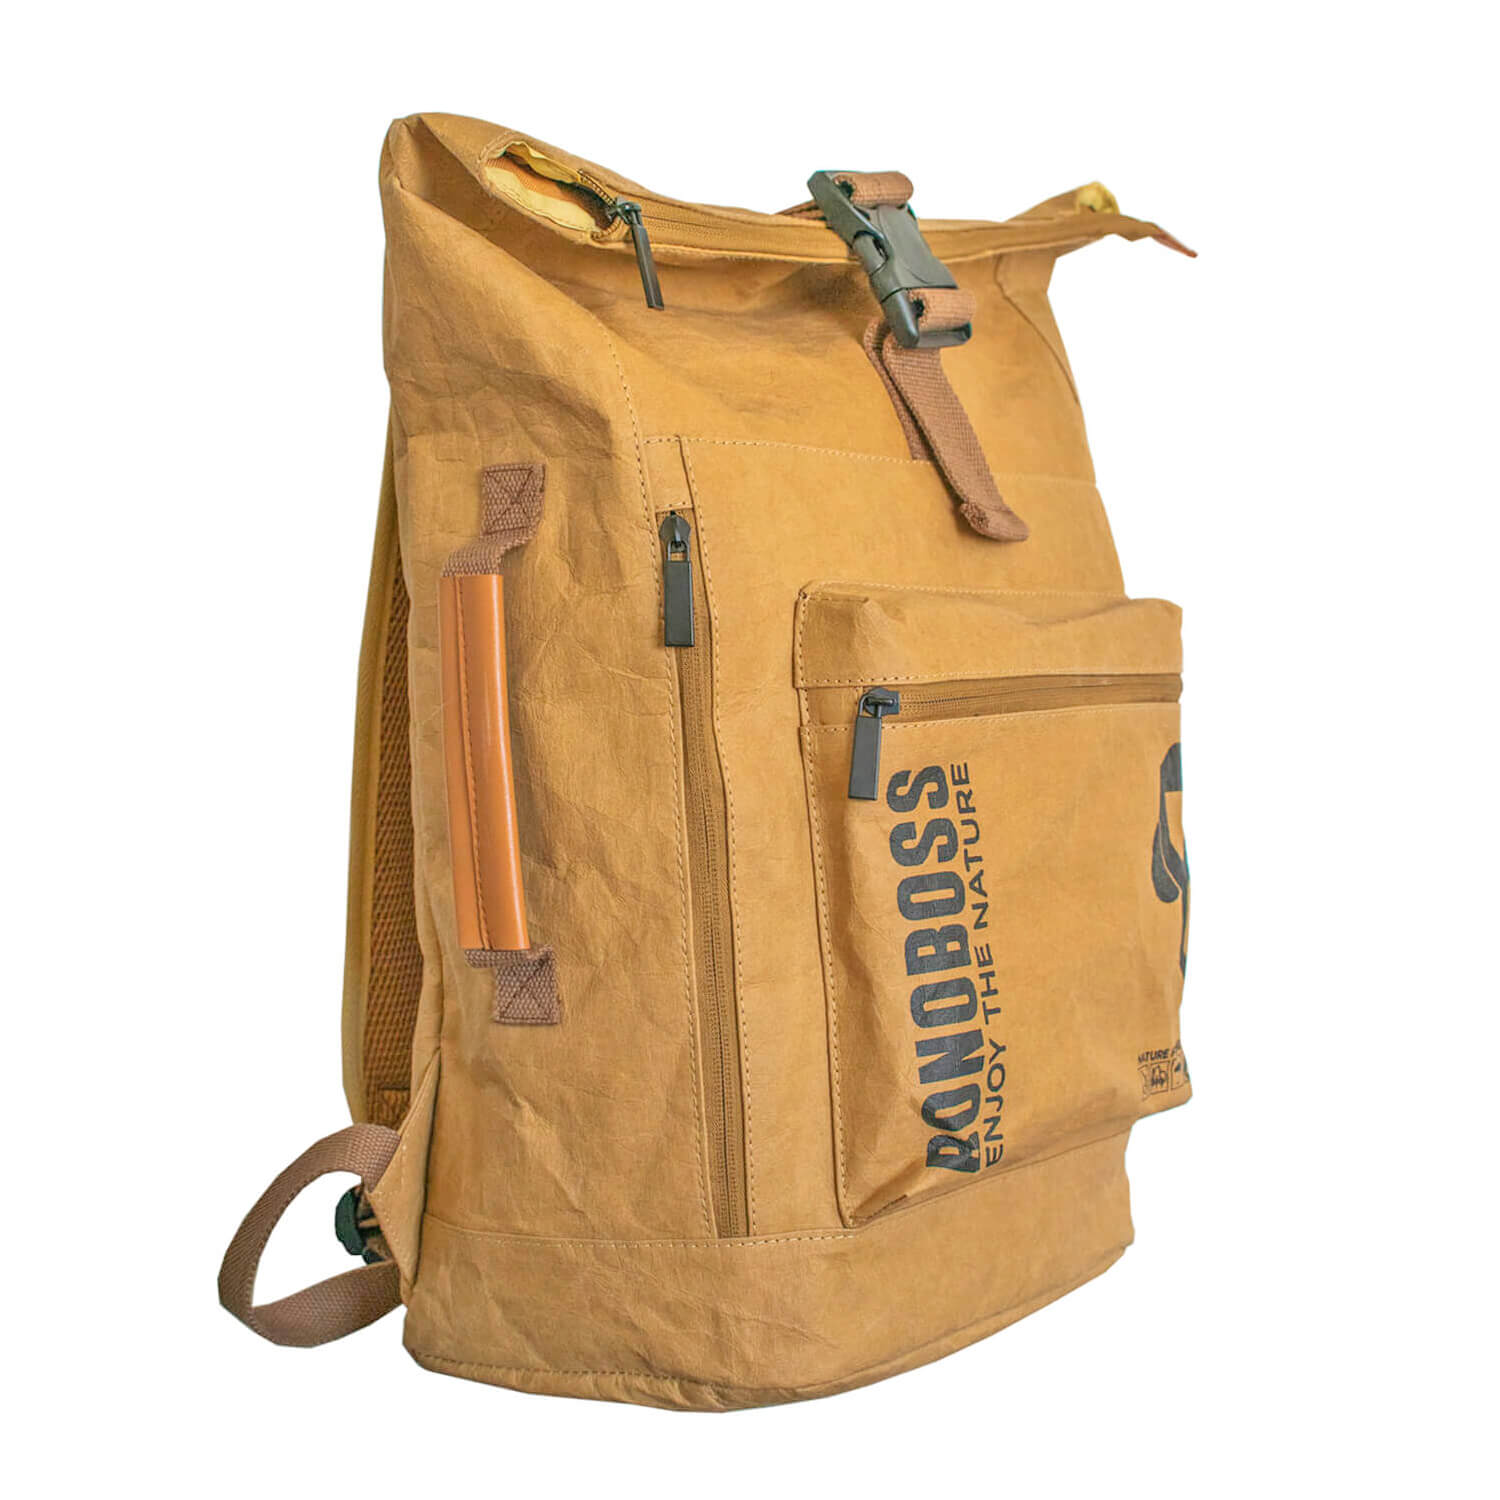 Mochila Papel Sustentable Mountain Ocre